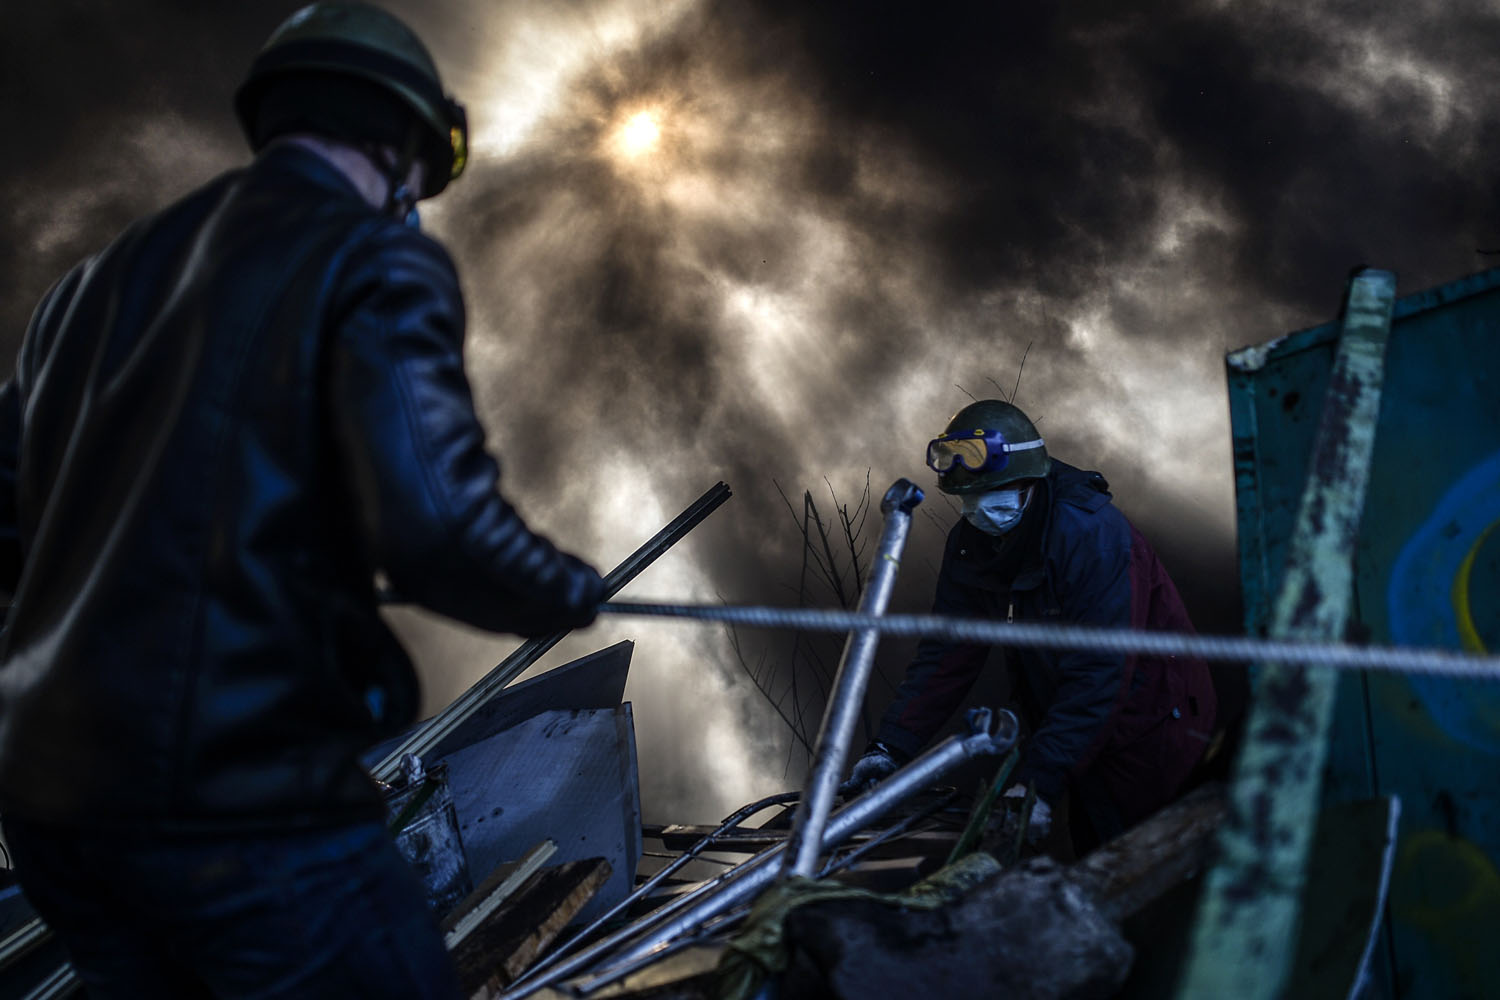 Protesters build a barricade early in the morning on at Independence Square in Kiev, Ukraine, Feb. 21, 2014.